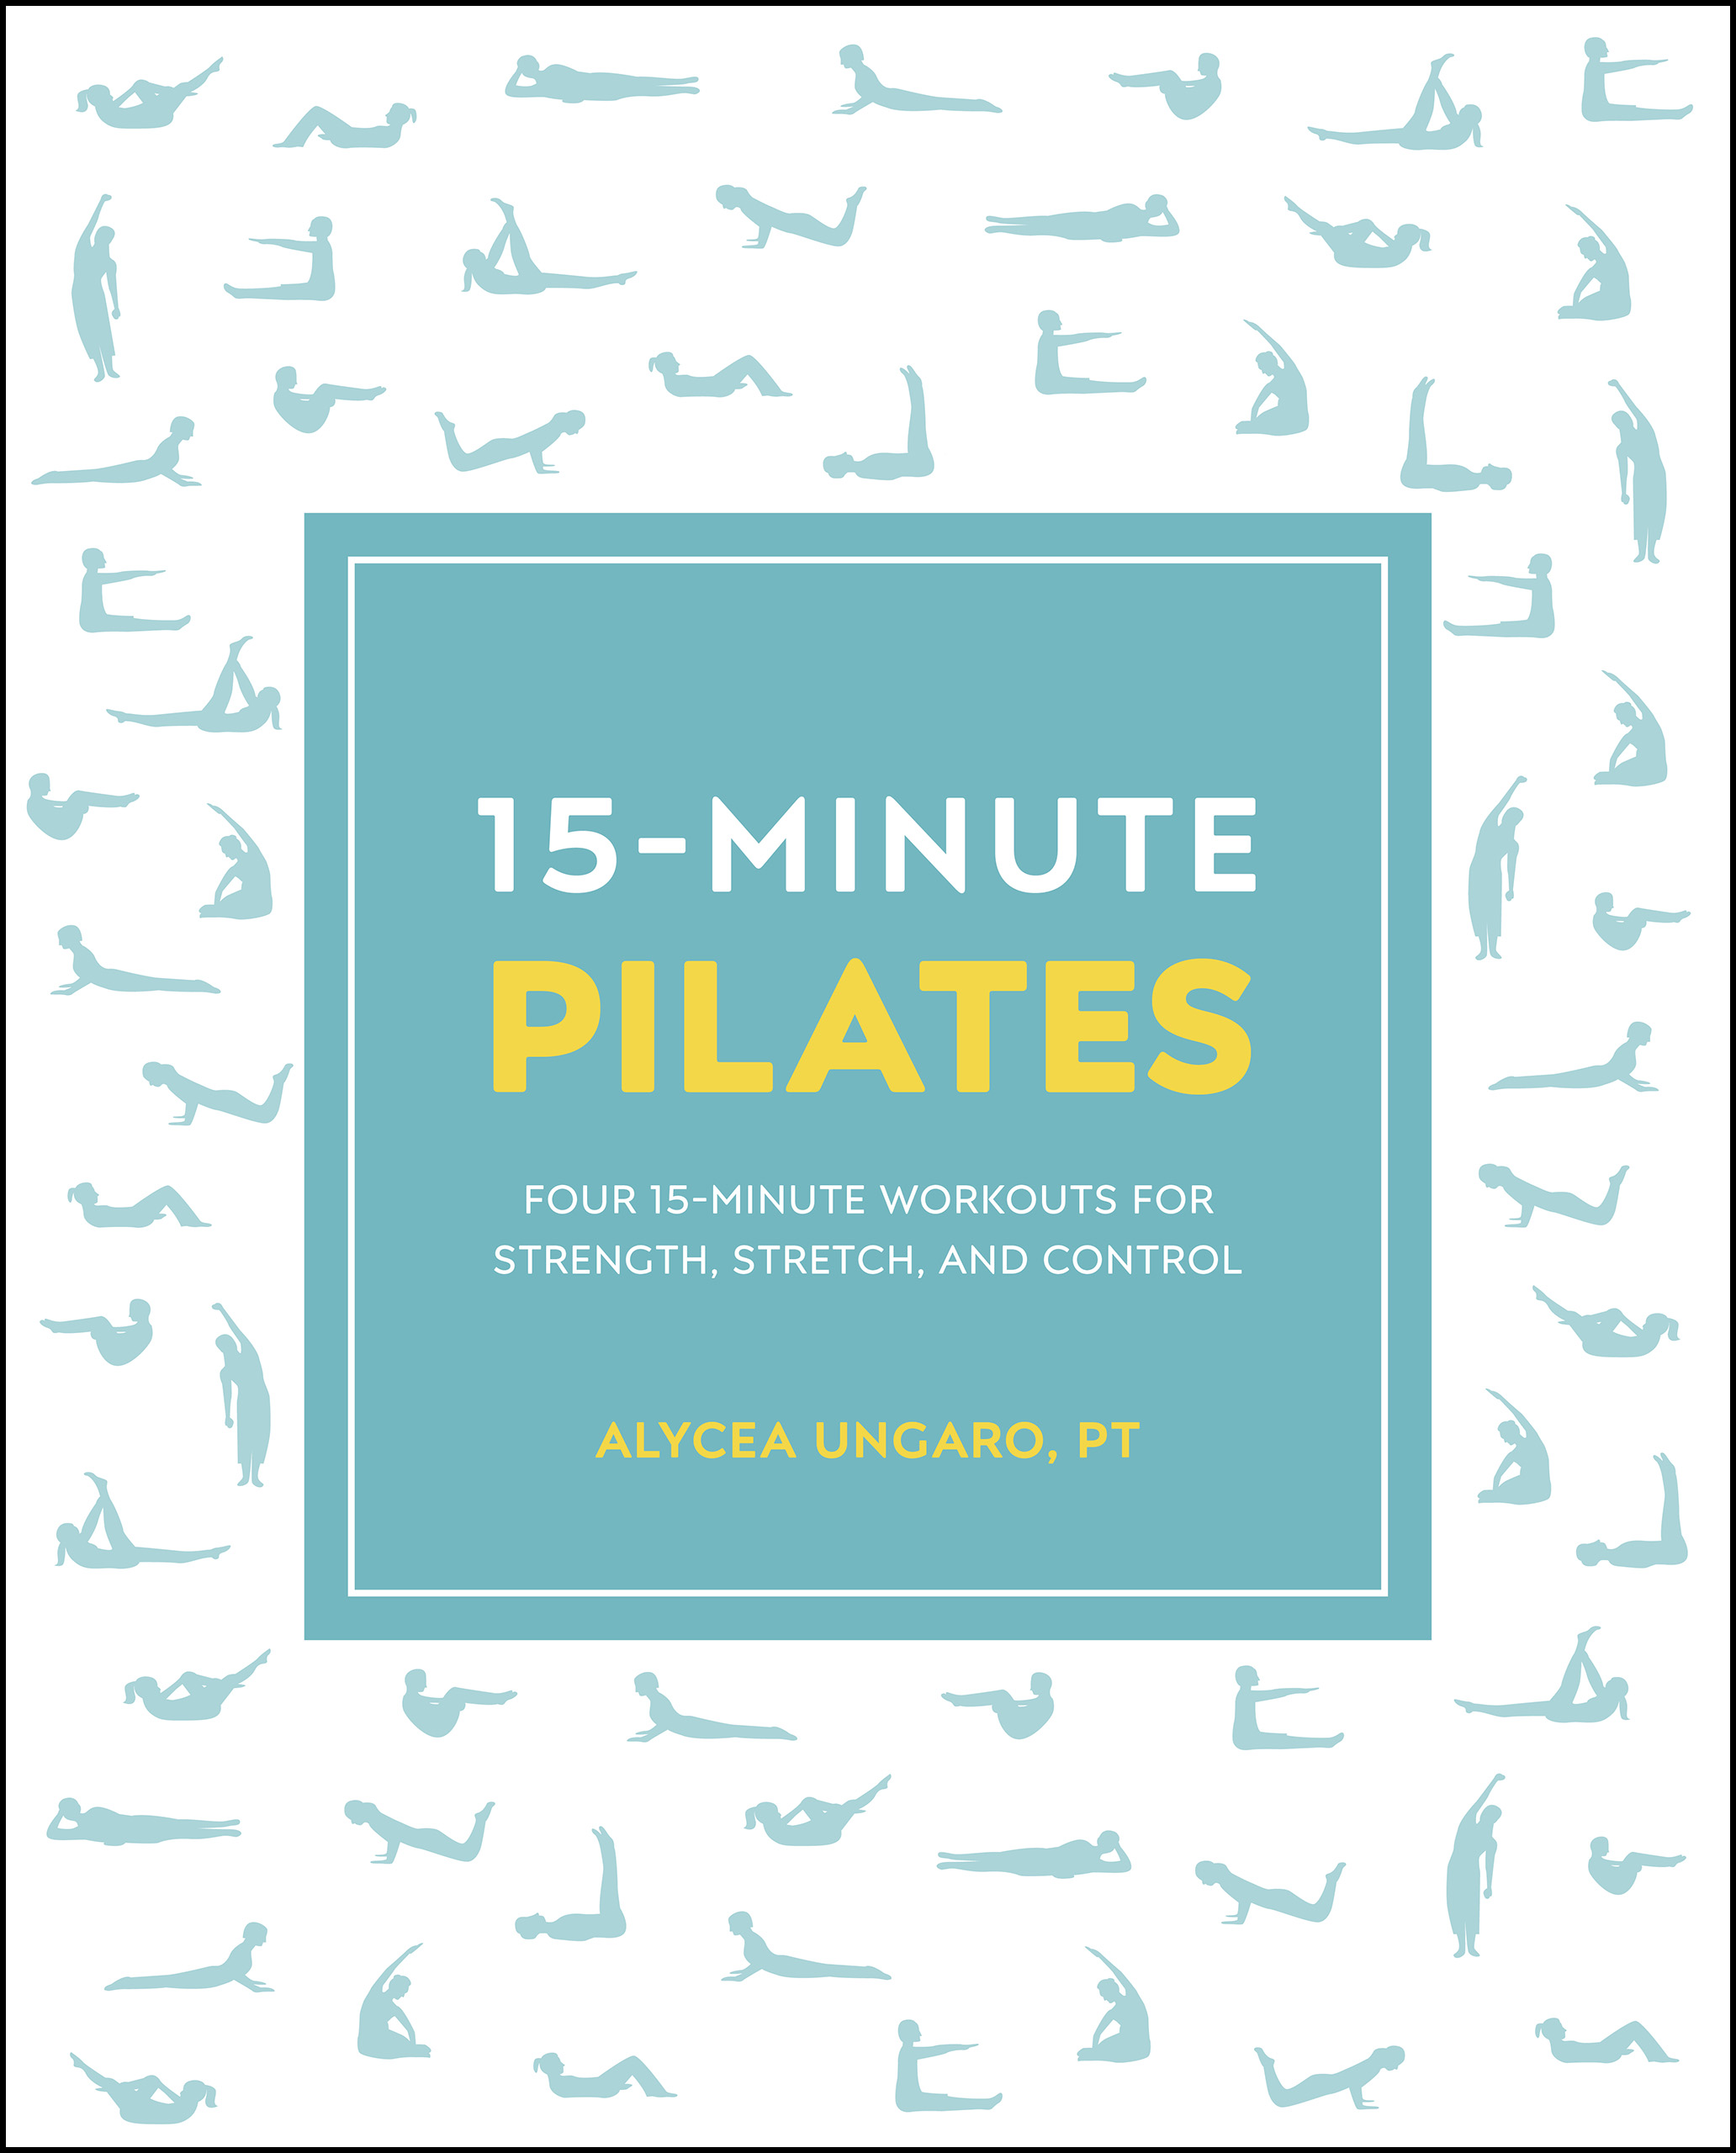 15-Minute Pilates Four 15-Minute Workouts for Strength, Stretch, and Control